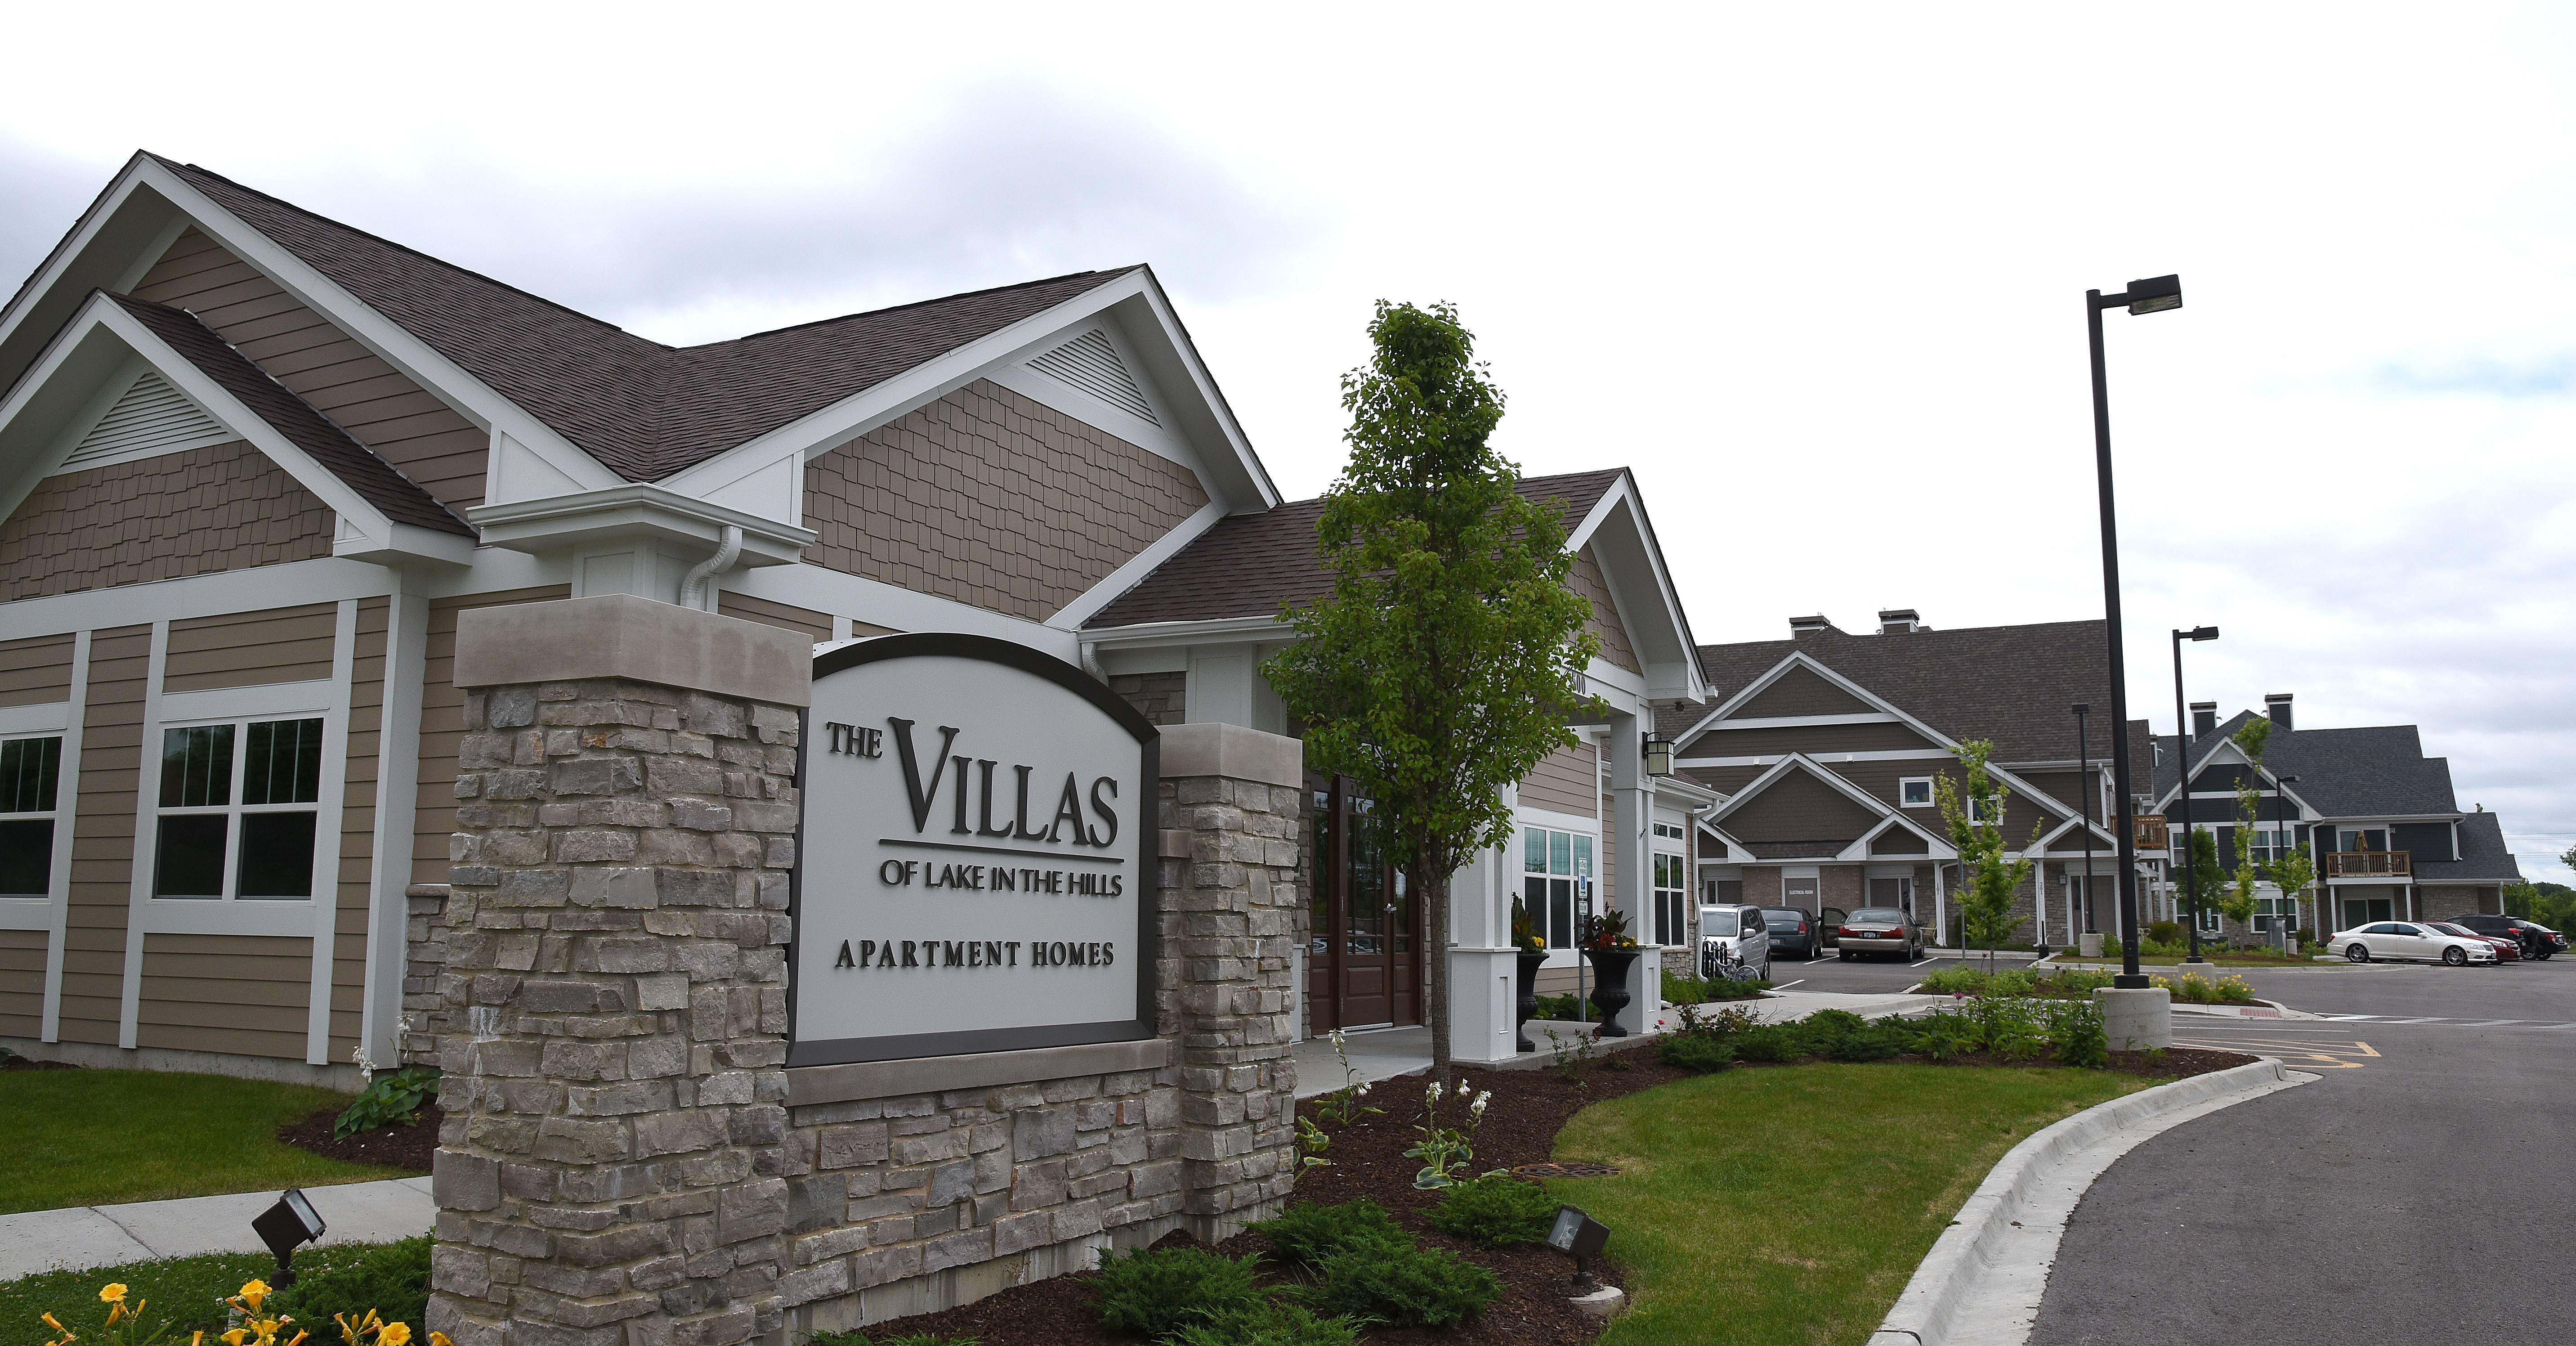 Lake in the Hills will host a community celebration Wednesday for the opening of The Villas of Lake in the Hills, an affordable rental community for veterans, seniors, working families, and people with disabilities and special needs.